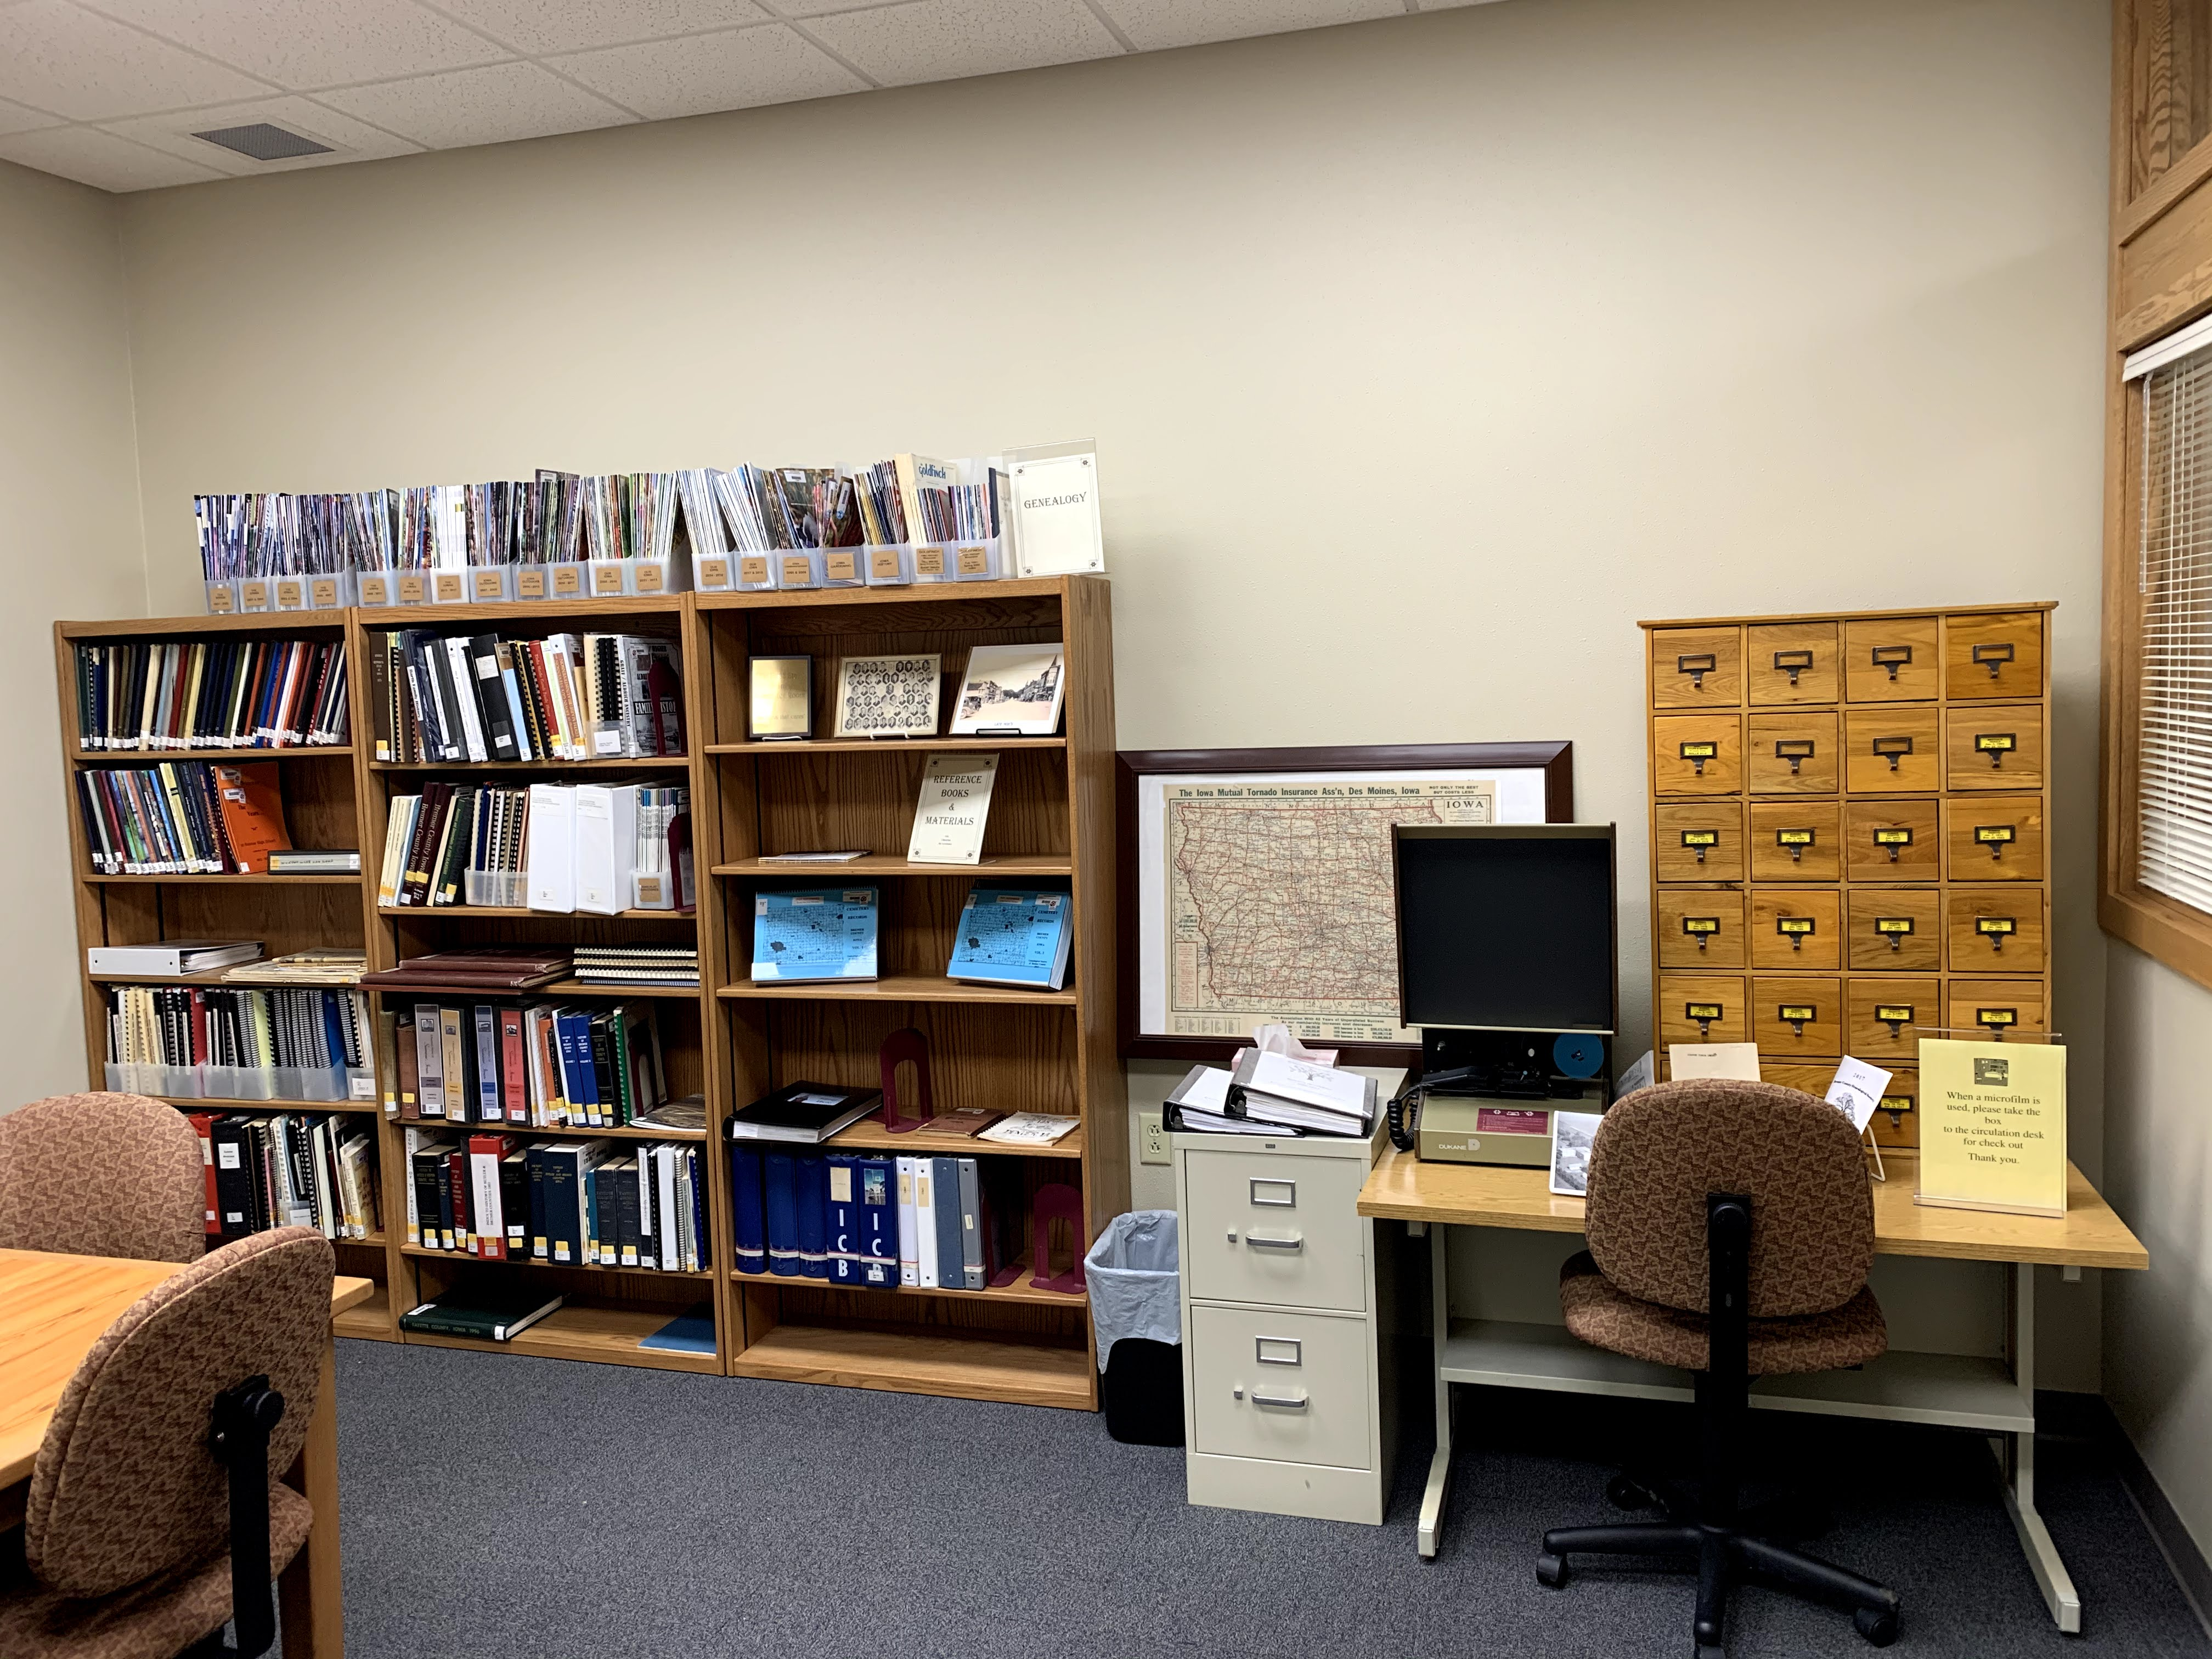 Local History Room Image 3.jpg